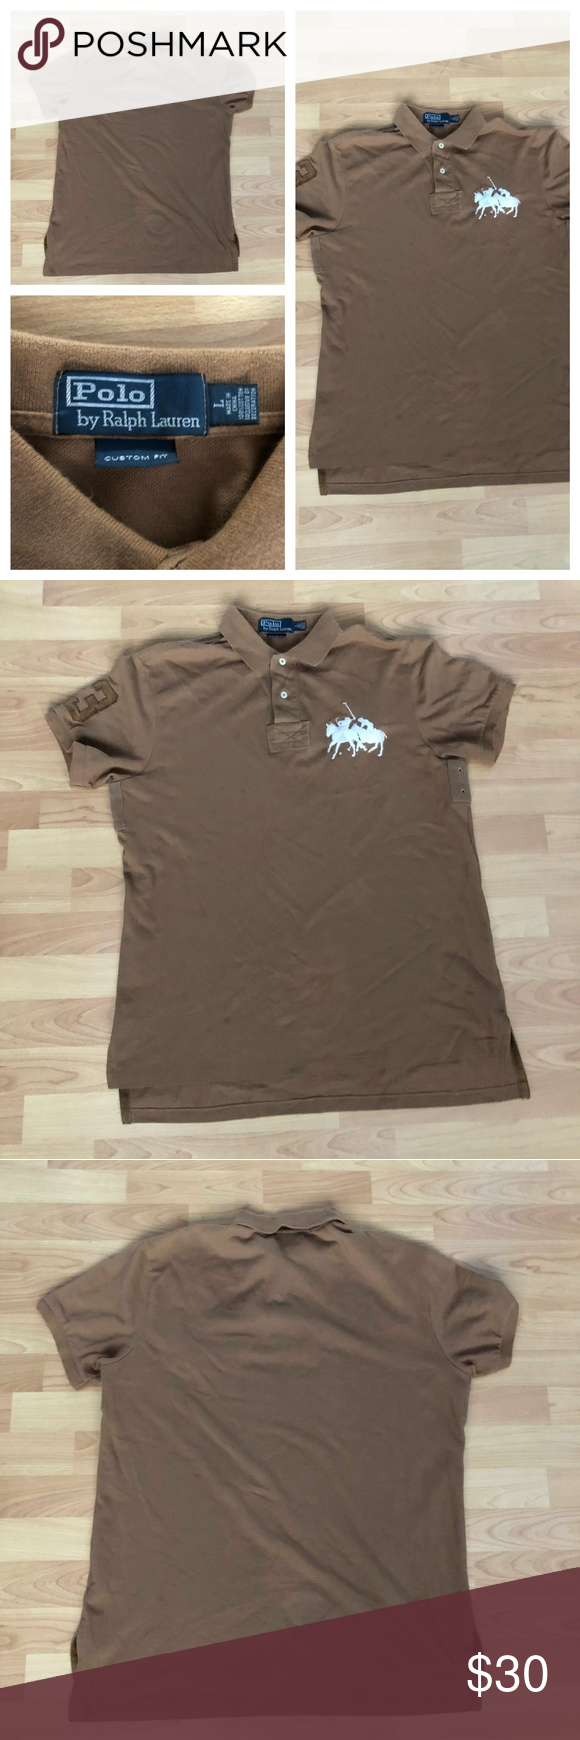 92d38e783 Vintage Polo Ralph lauren button rugby Shirt Mens Vintage Polo Ralph lauren  button rugby Shirt Mens size Large brown white custom ITEM FEATURES!